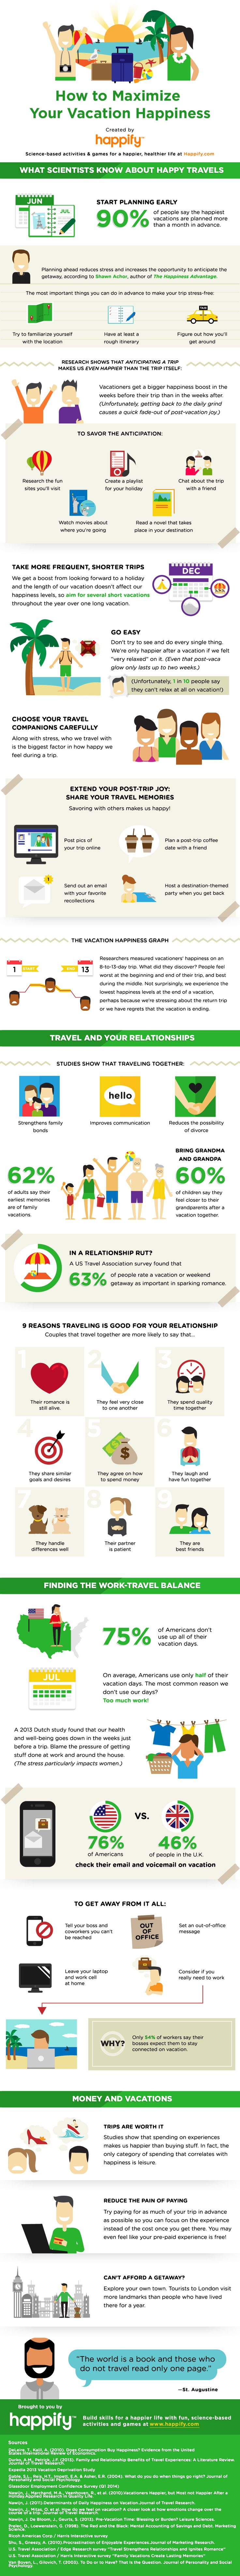 INFOGRAPHIC: 11 Secrets for a Happier Vacation, Backed by Science via @happifyhq.